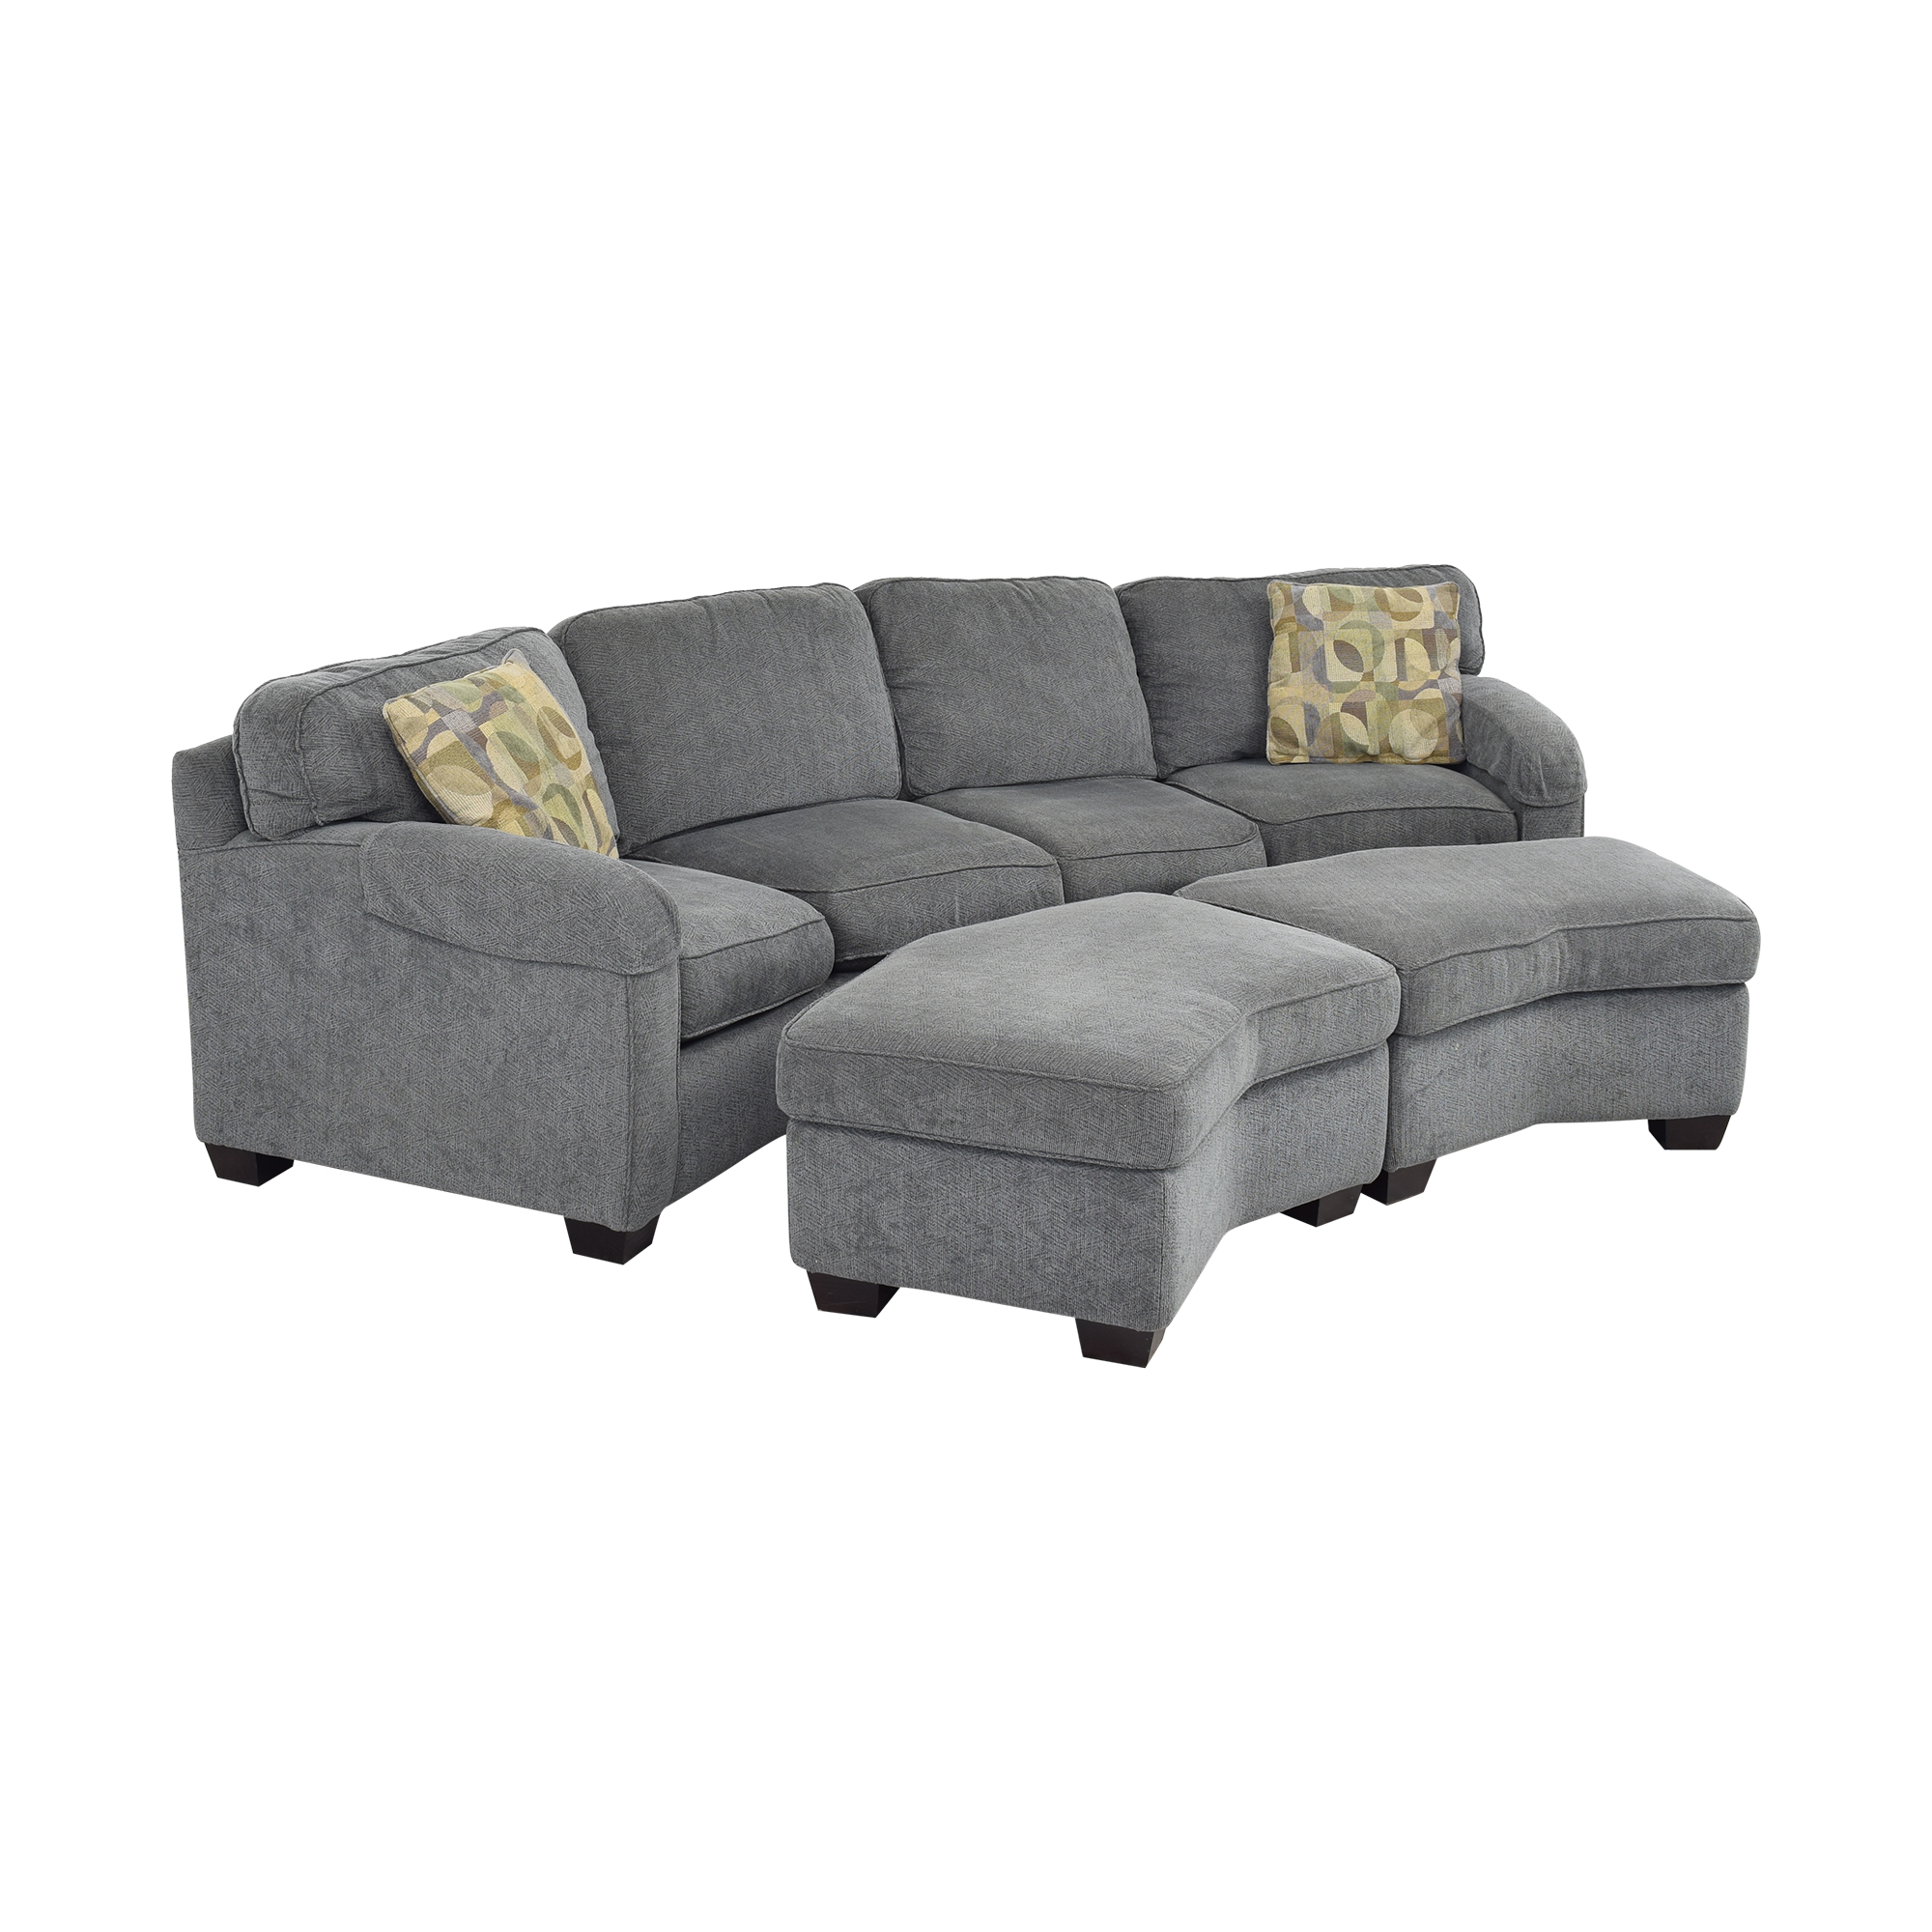 Bassett Furniture Sectional Sofa with Ottomans sale